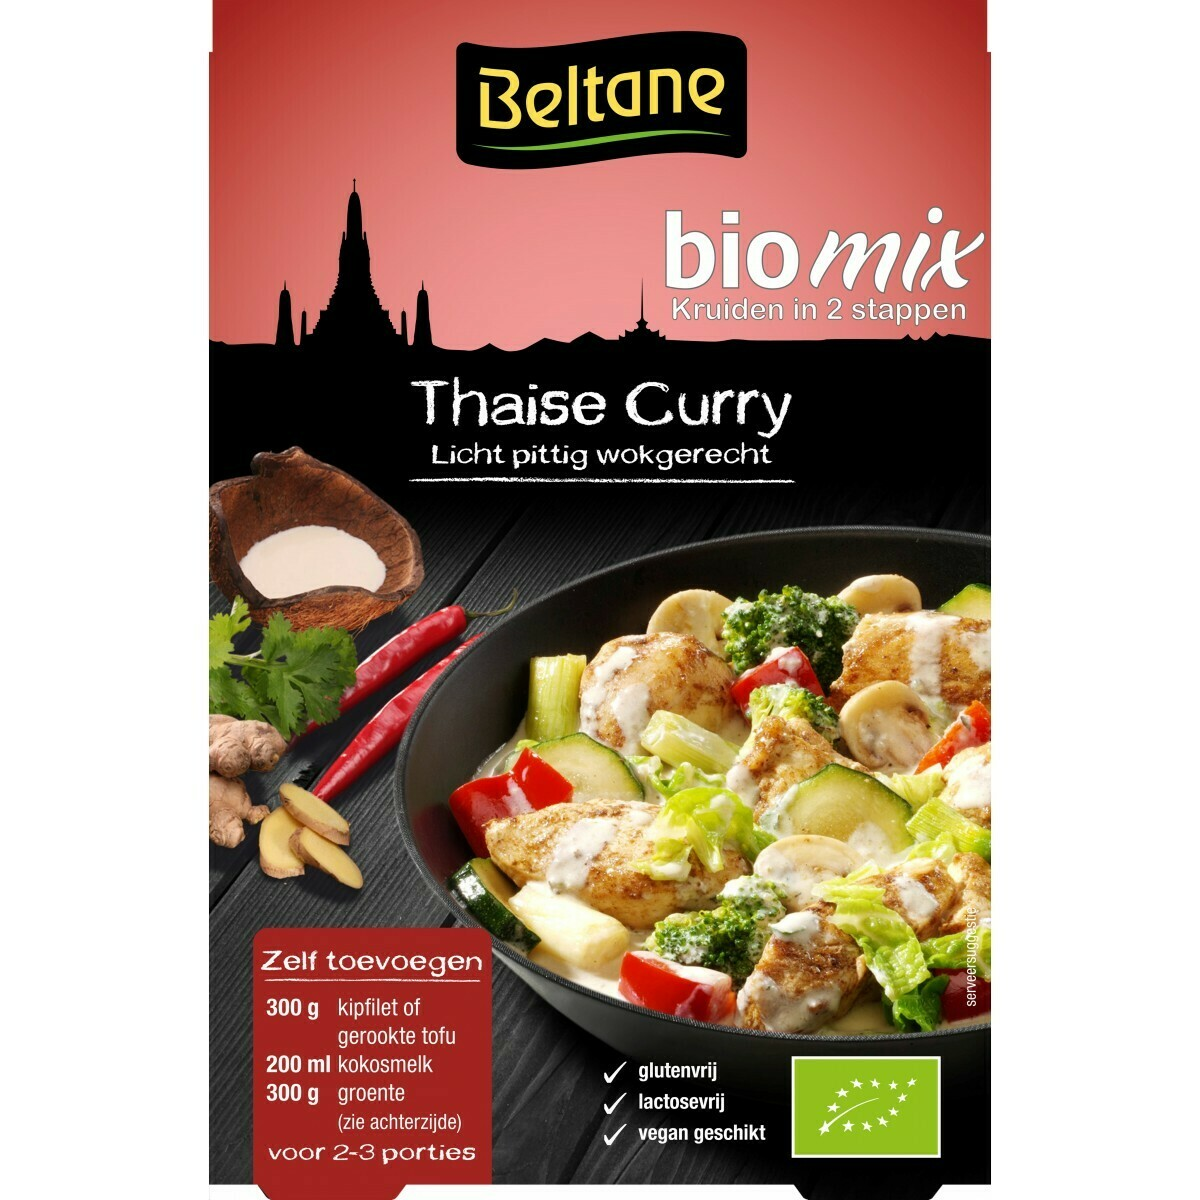 Beltane Thaise Curry